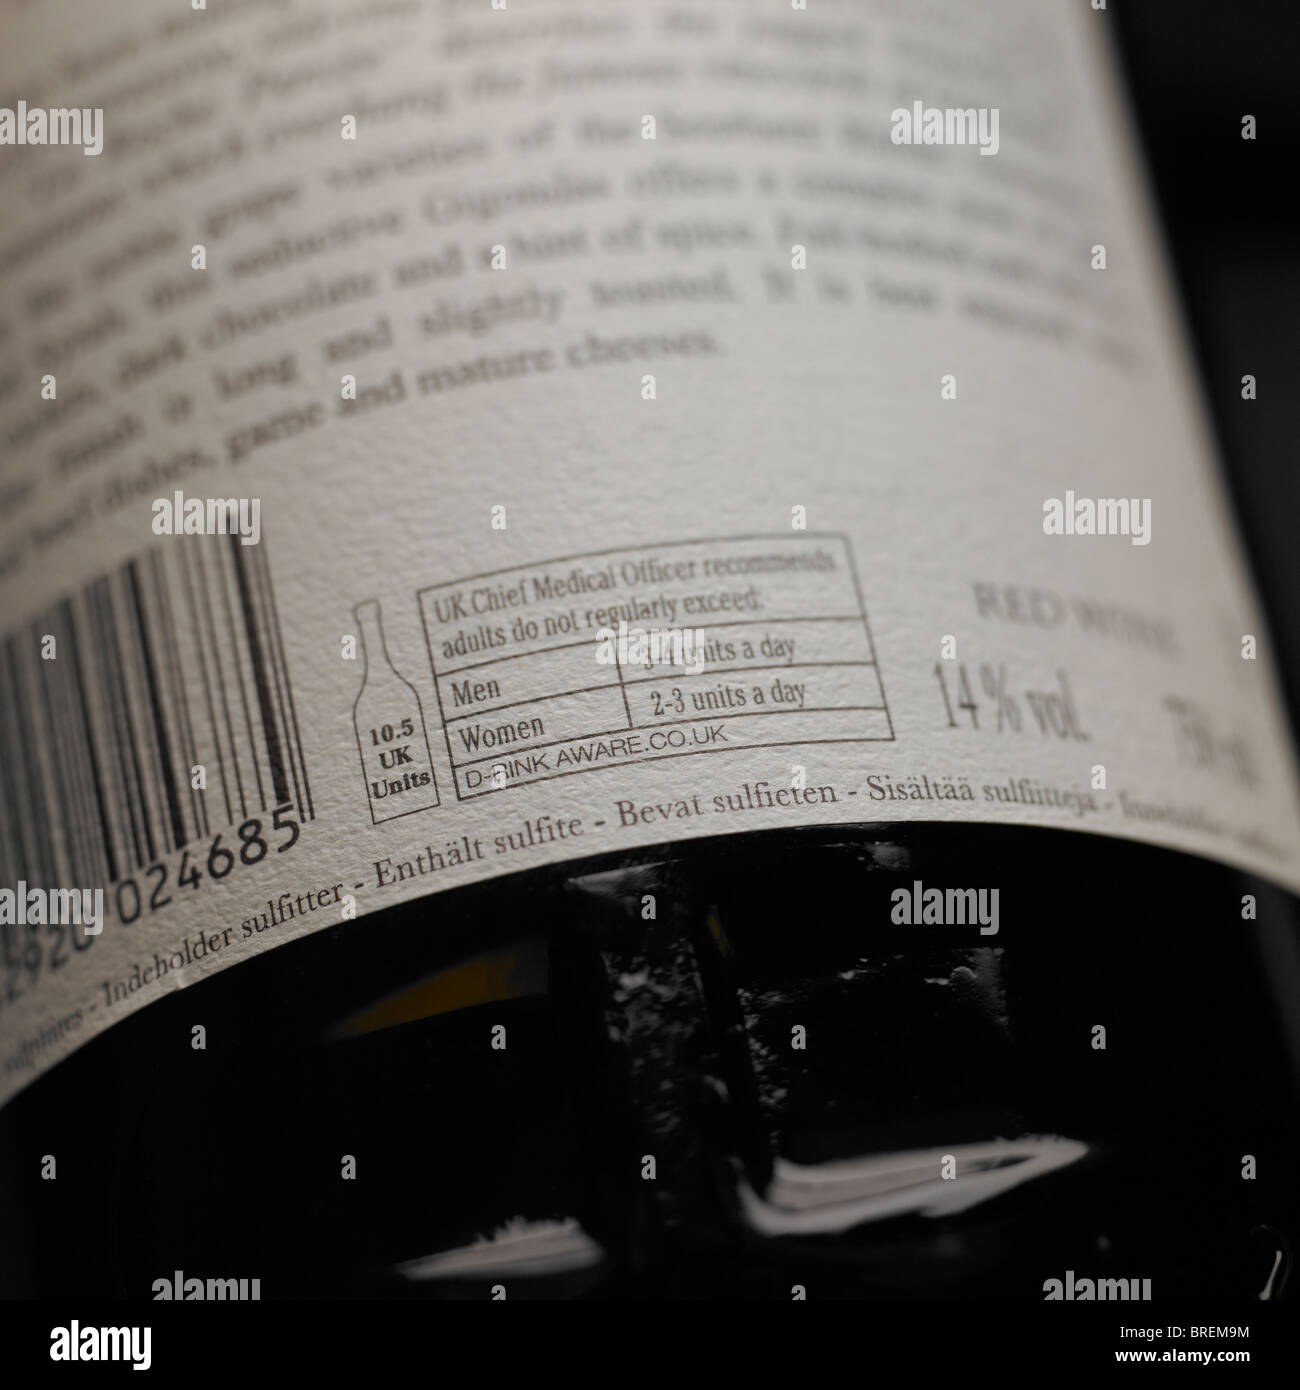 Alcohol Consumption Guide on back of wine label - Stock Image